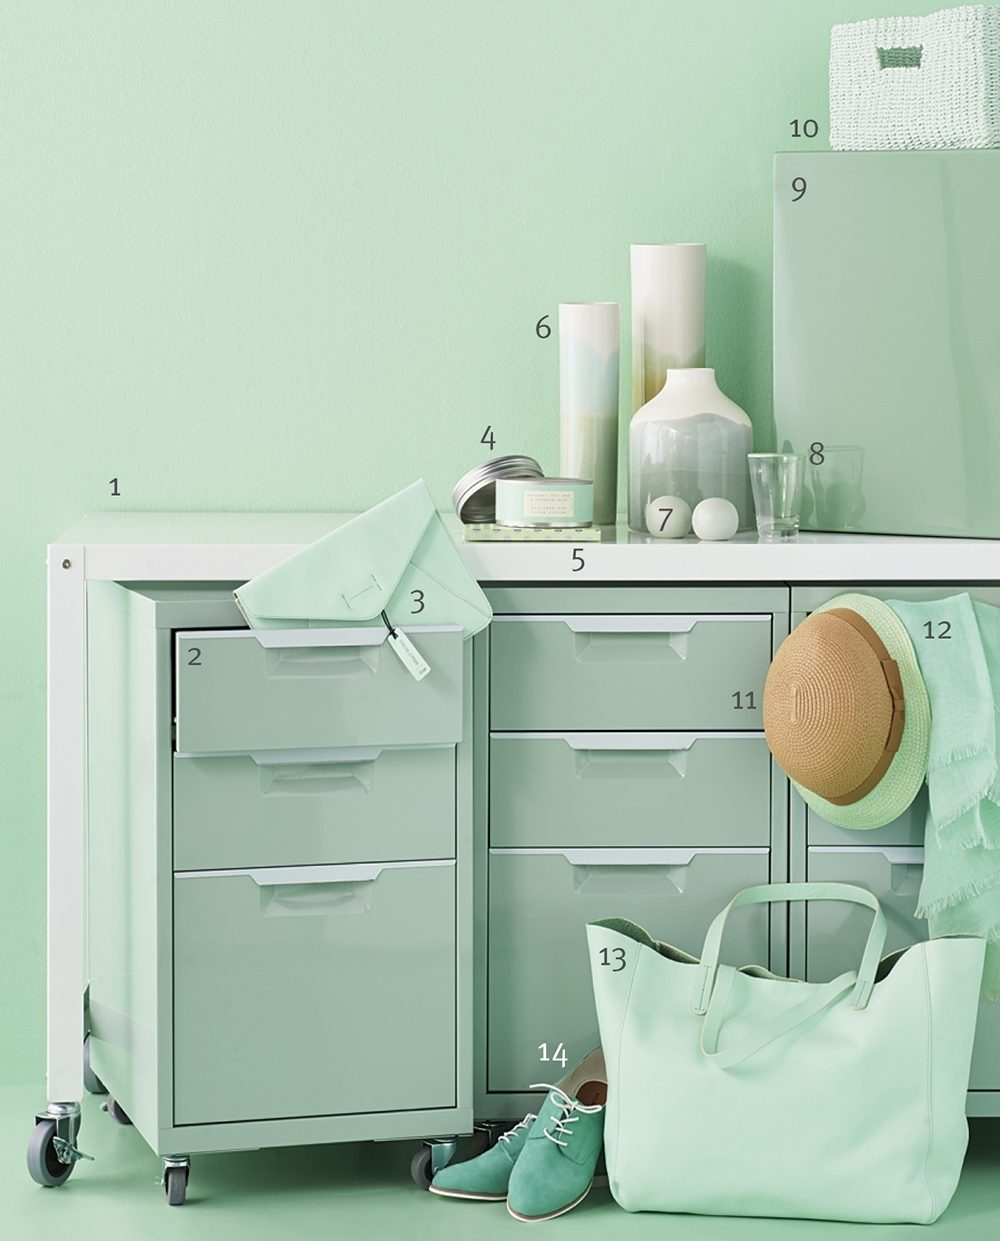 A display of a variety of mint-colored items